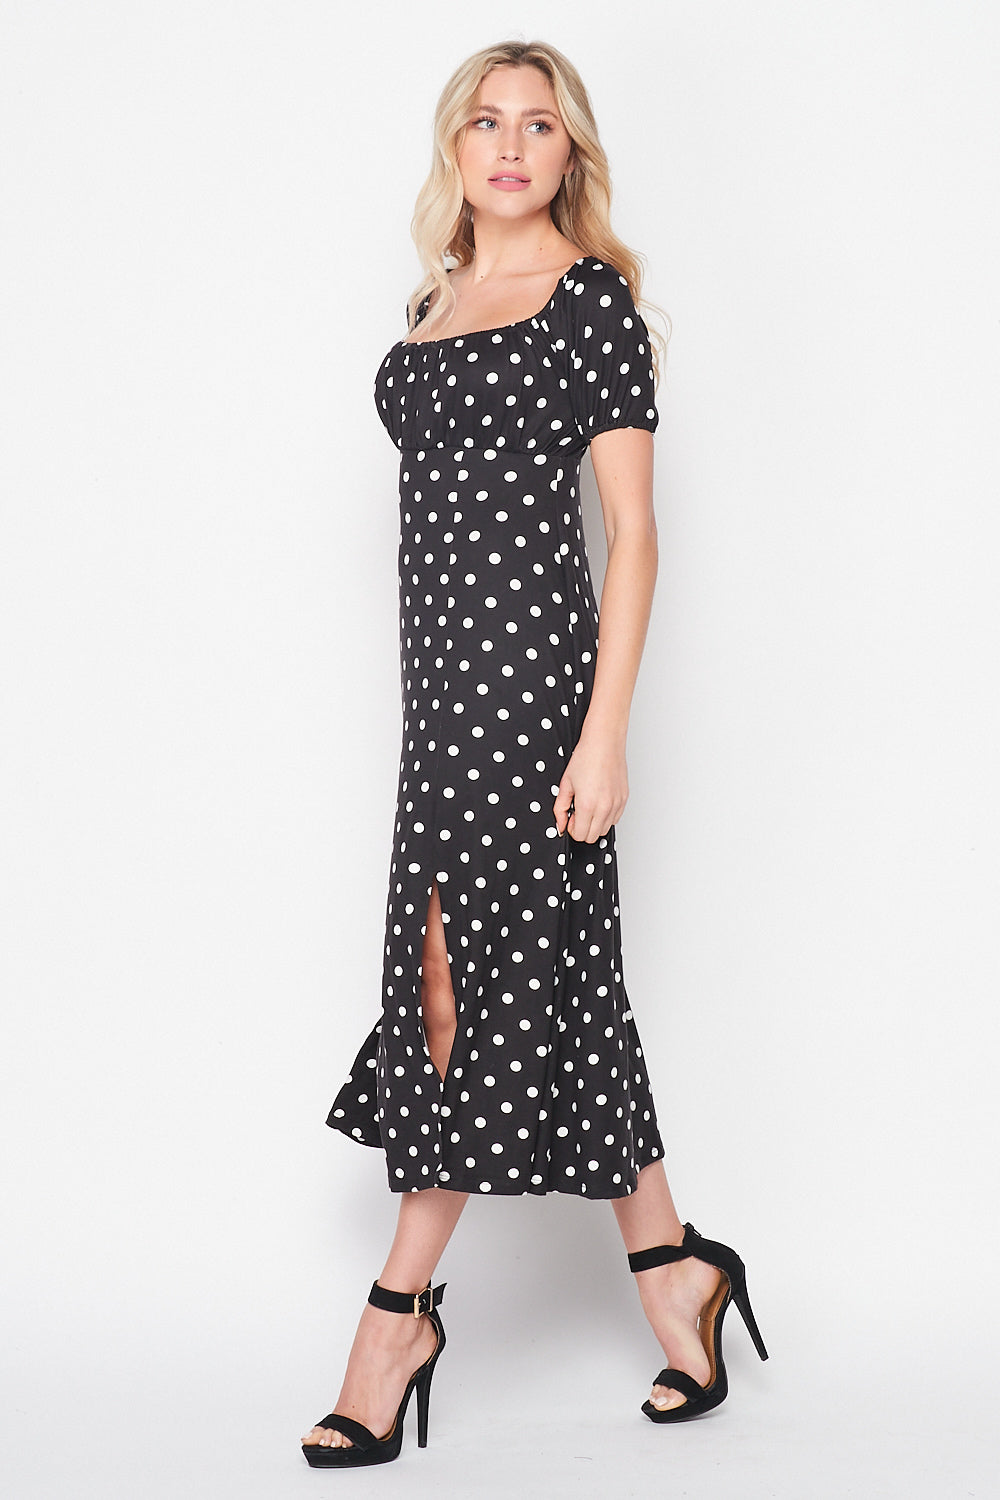 Champagne Brunch Puff Sleeve Knit Dress With Slit | Black/White Dots - Velvet Torch